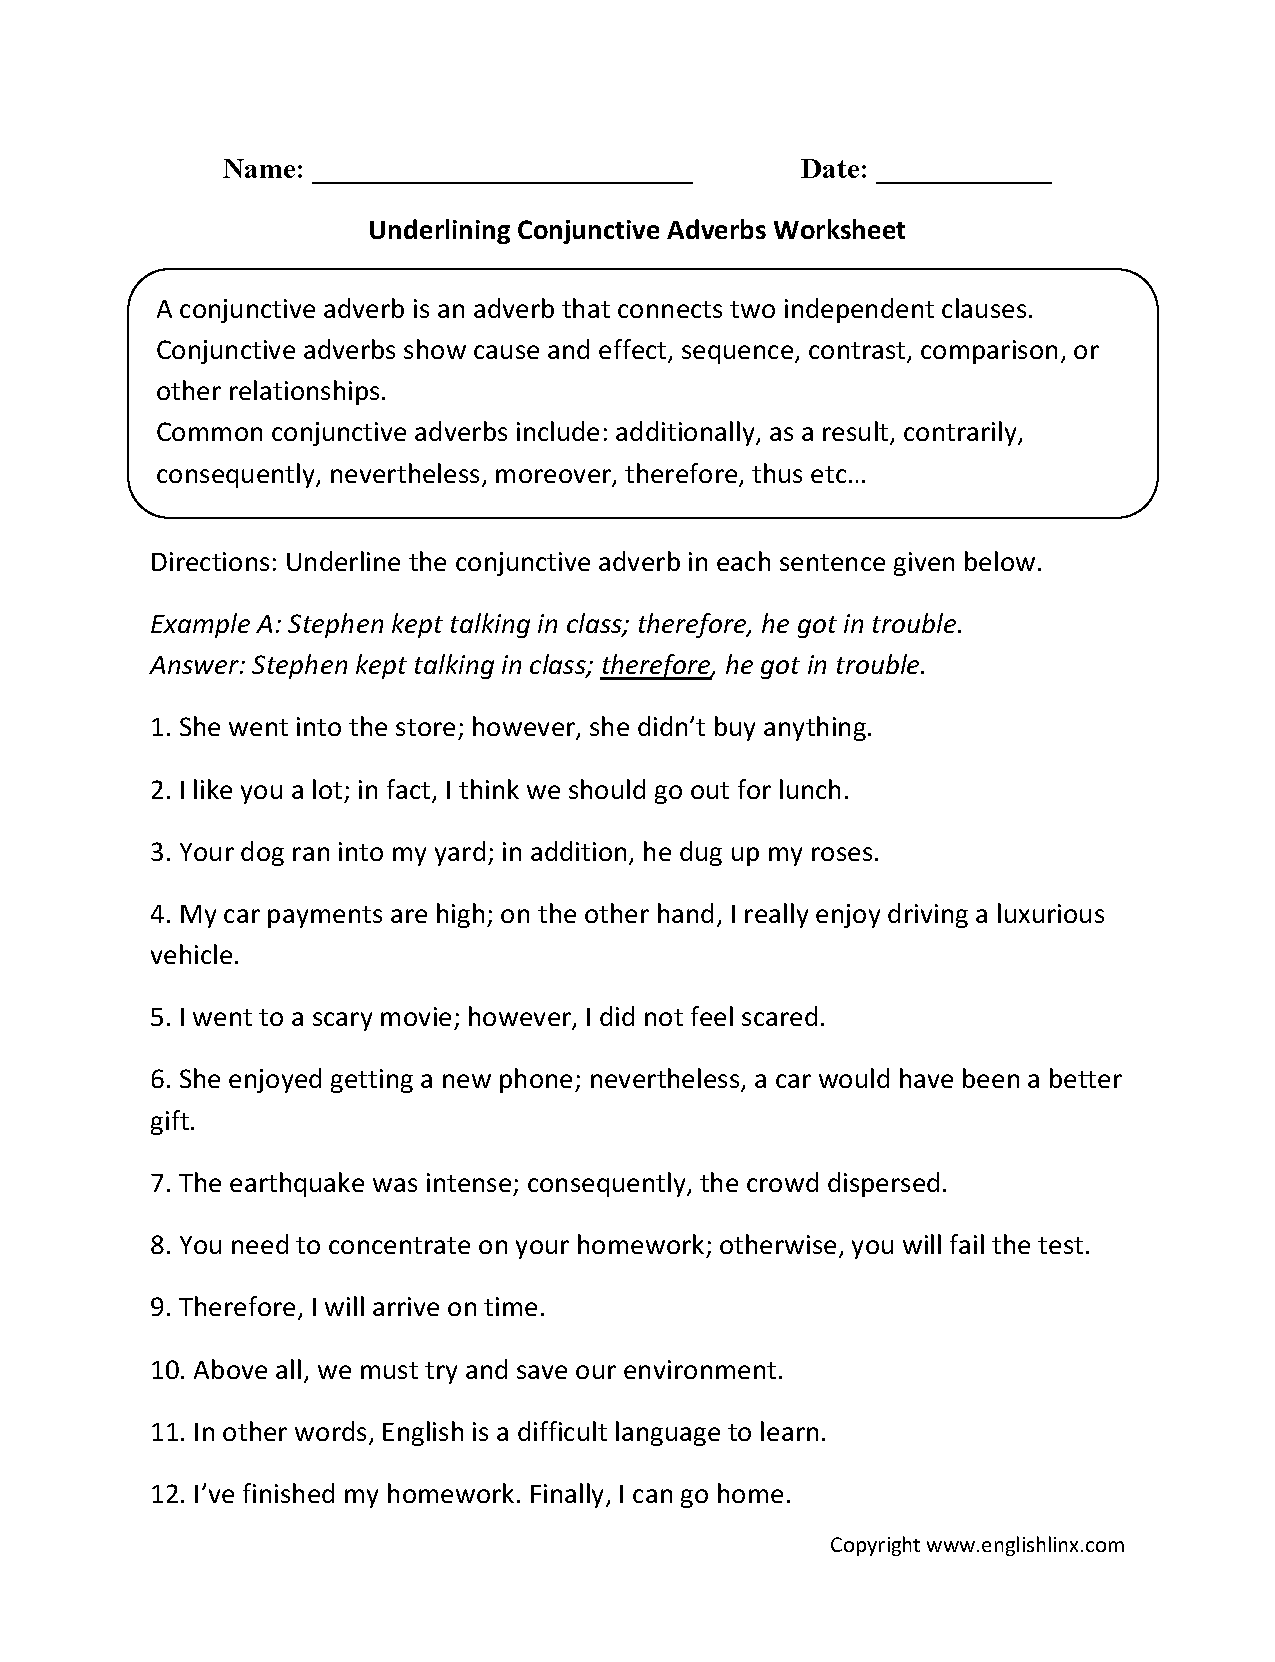 Aldiablosus  Pretty Englishlinxcom  Conjunctions Worksheets With Engaging Worksheet With Cute French Days Of The Week Worksheets Also Handwriting Free Printable Worksheets In Addition Whole Numbers Worksheet And Santa Worksheet As Well As Change Active To Passive Voice Worksheets Additionally Printable Letter M Worksheets From Englishlinxcom With Aldiablosus  Engaging Englishlinxcom  Conjunctions Worksheets With Cute Worksheet And Pretty French Days Of The Week Worksheets Also Handwriting Free Printable Worksheets In Addition Whole Numbers Worksheet From Englishlinxcom